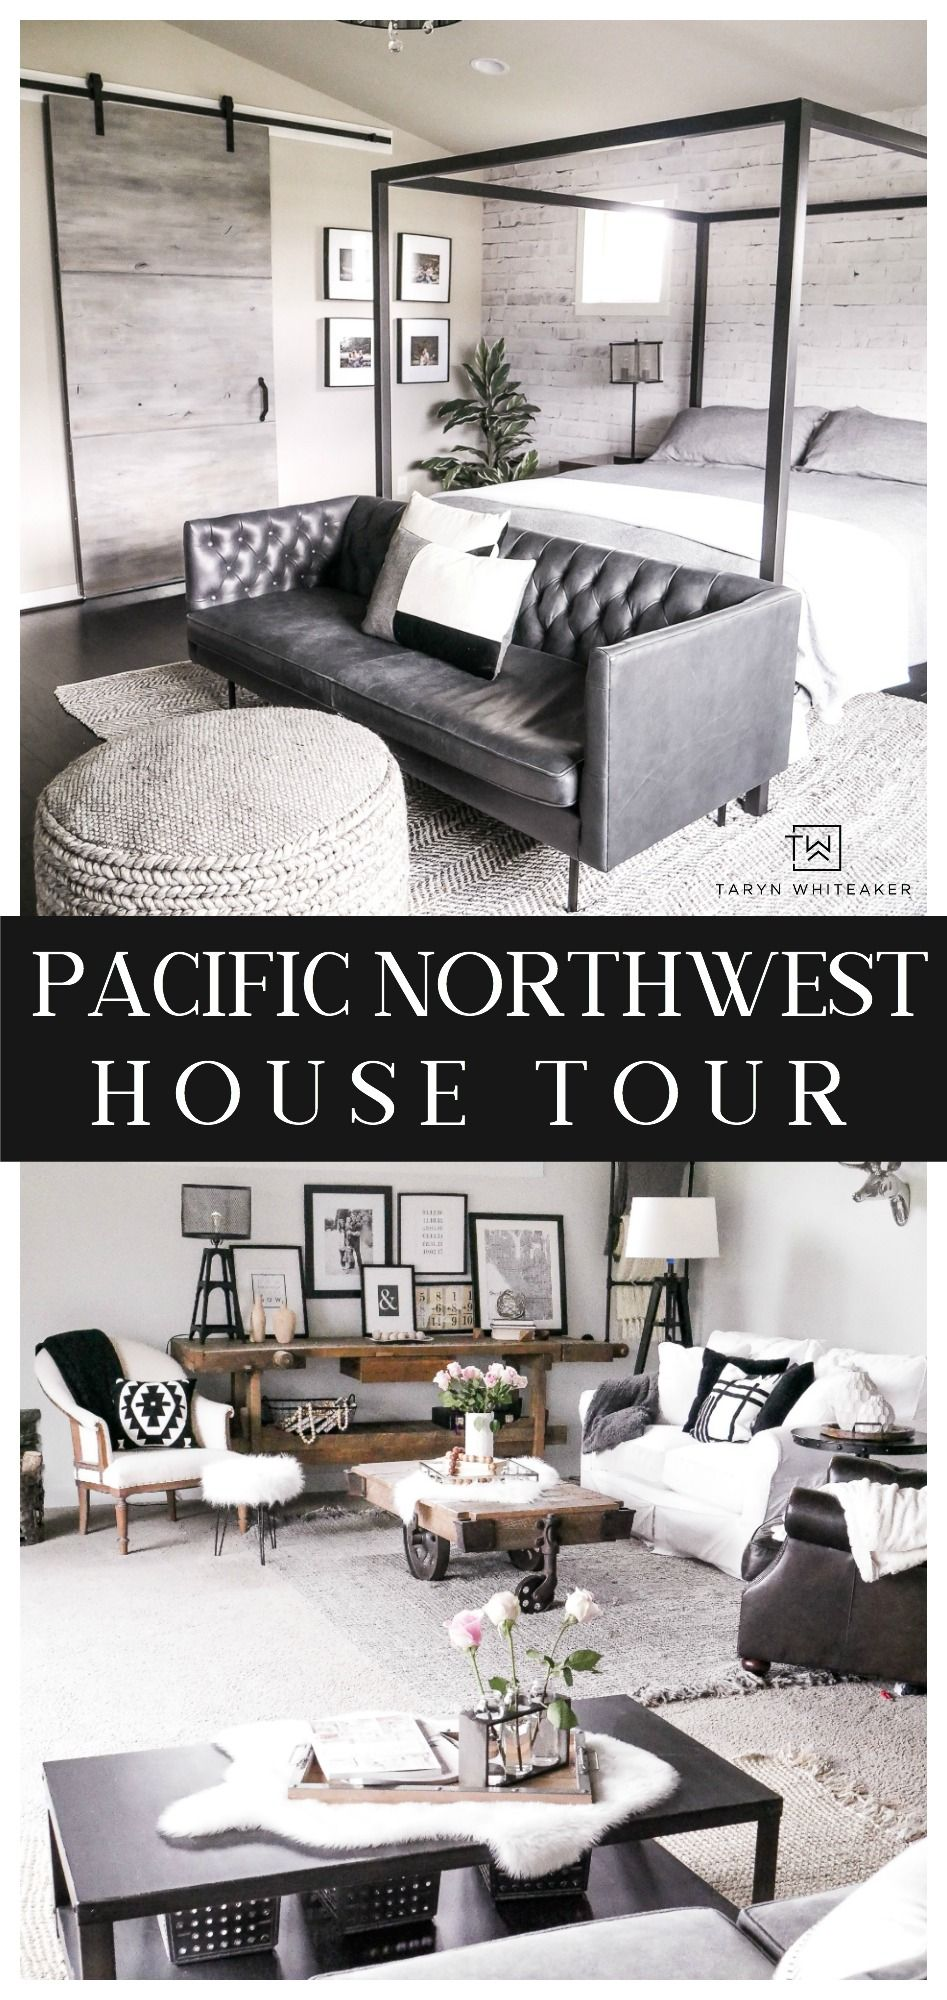 Pacific northwest house tour blogs design dining u diapers